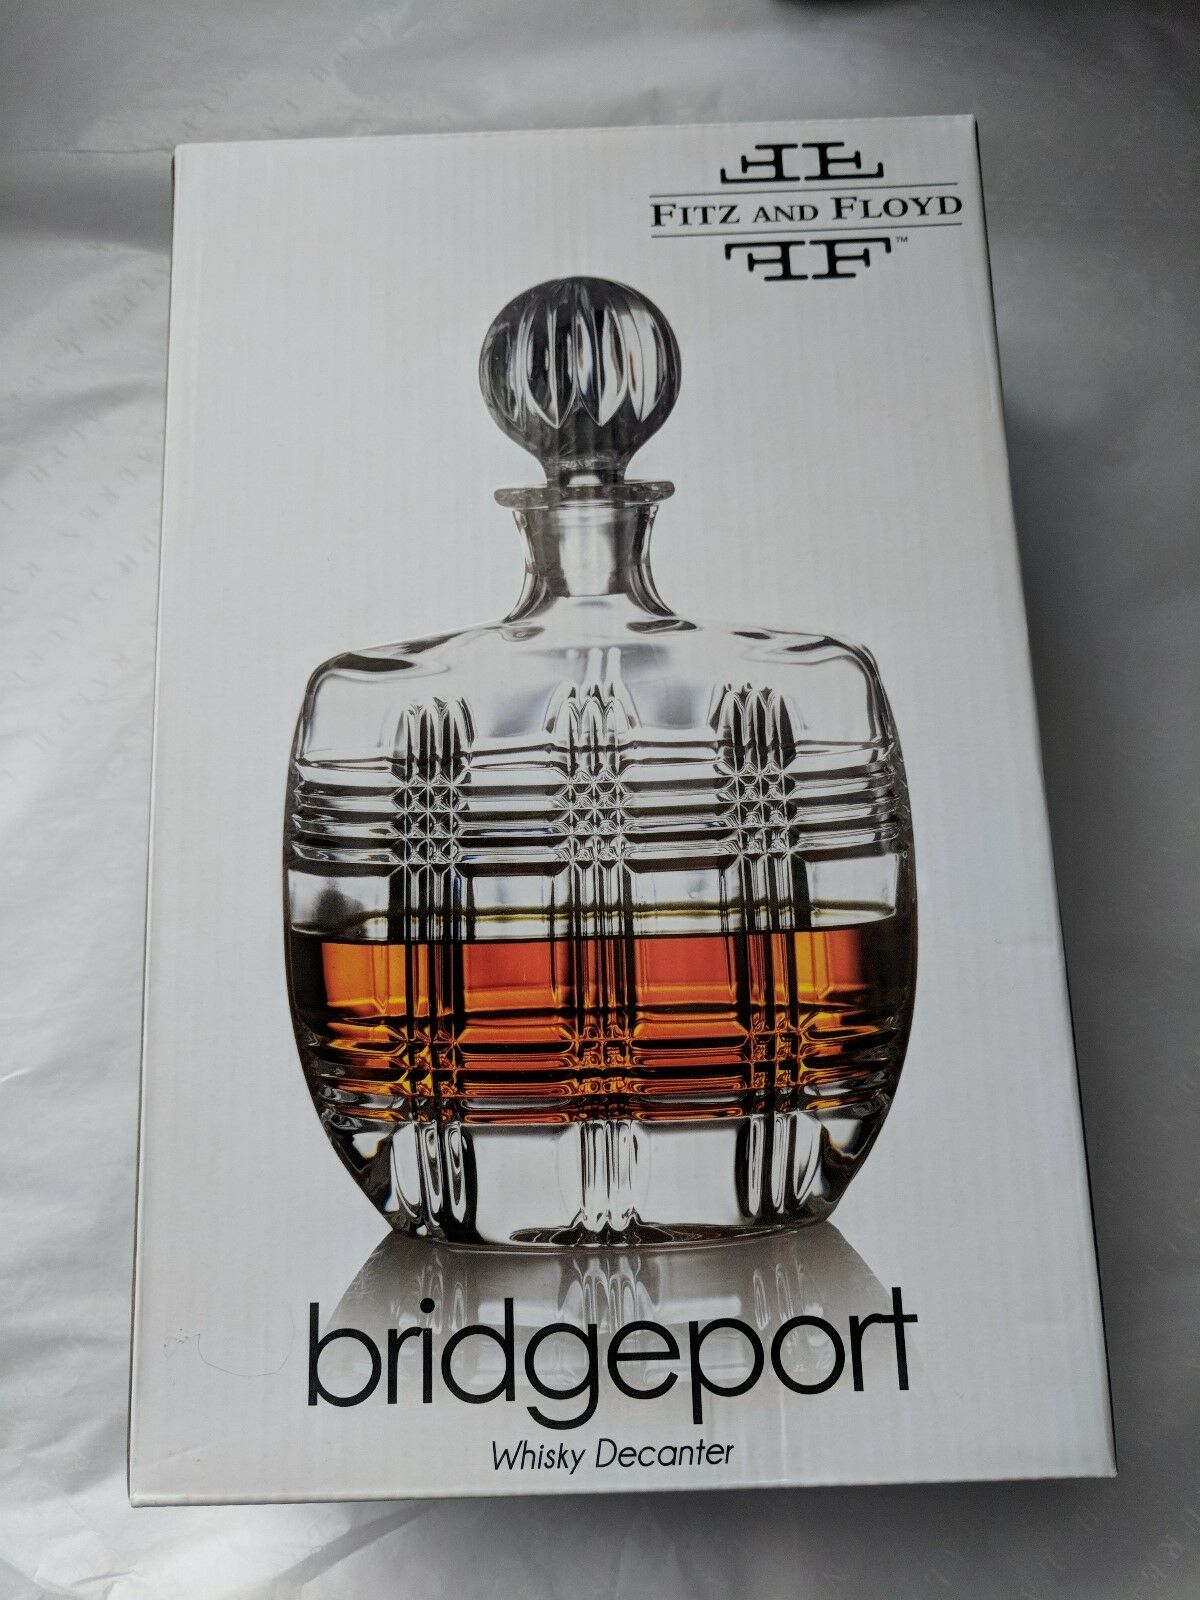 Fritz and Floyd Bridgeport Whisky Decanter 23.7 oz gm1457